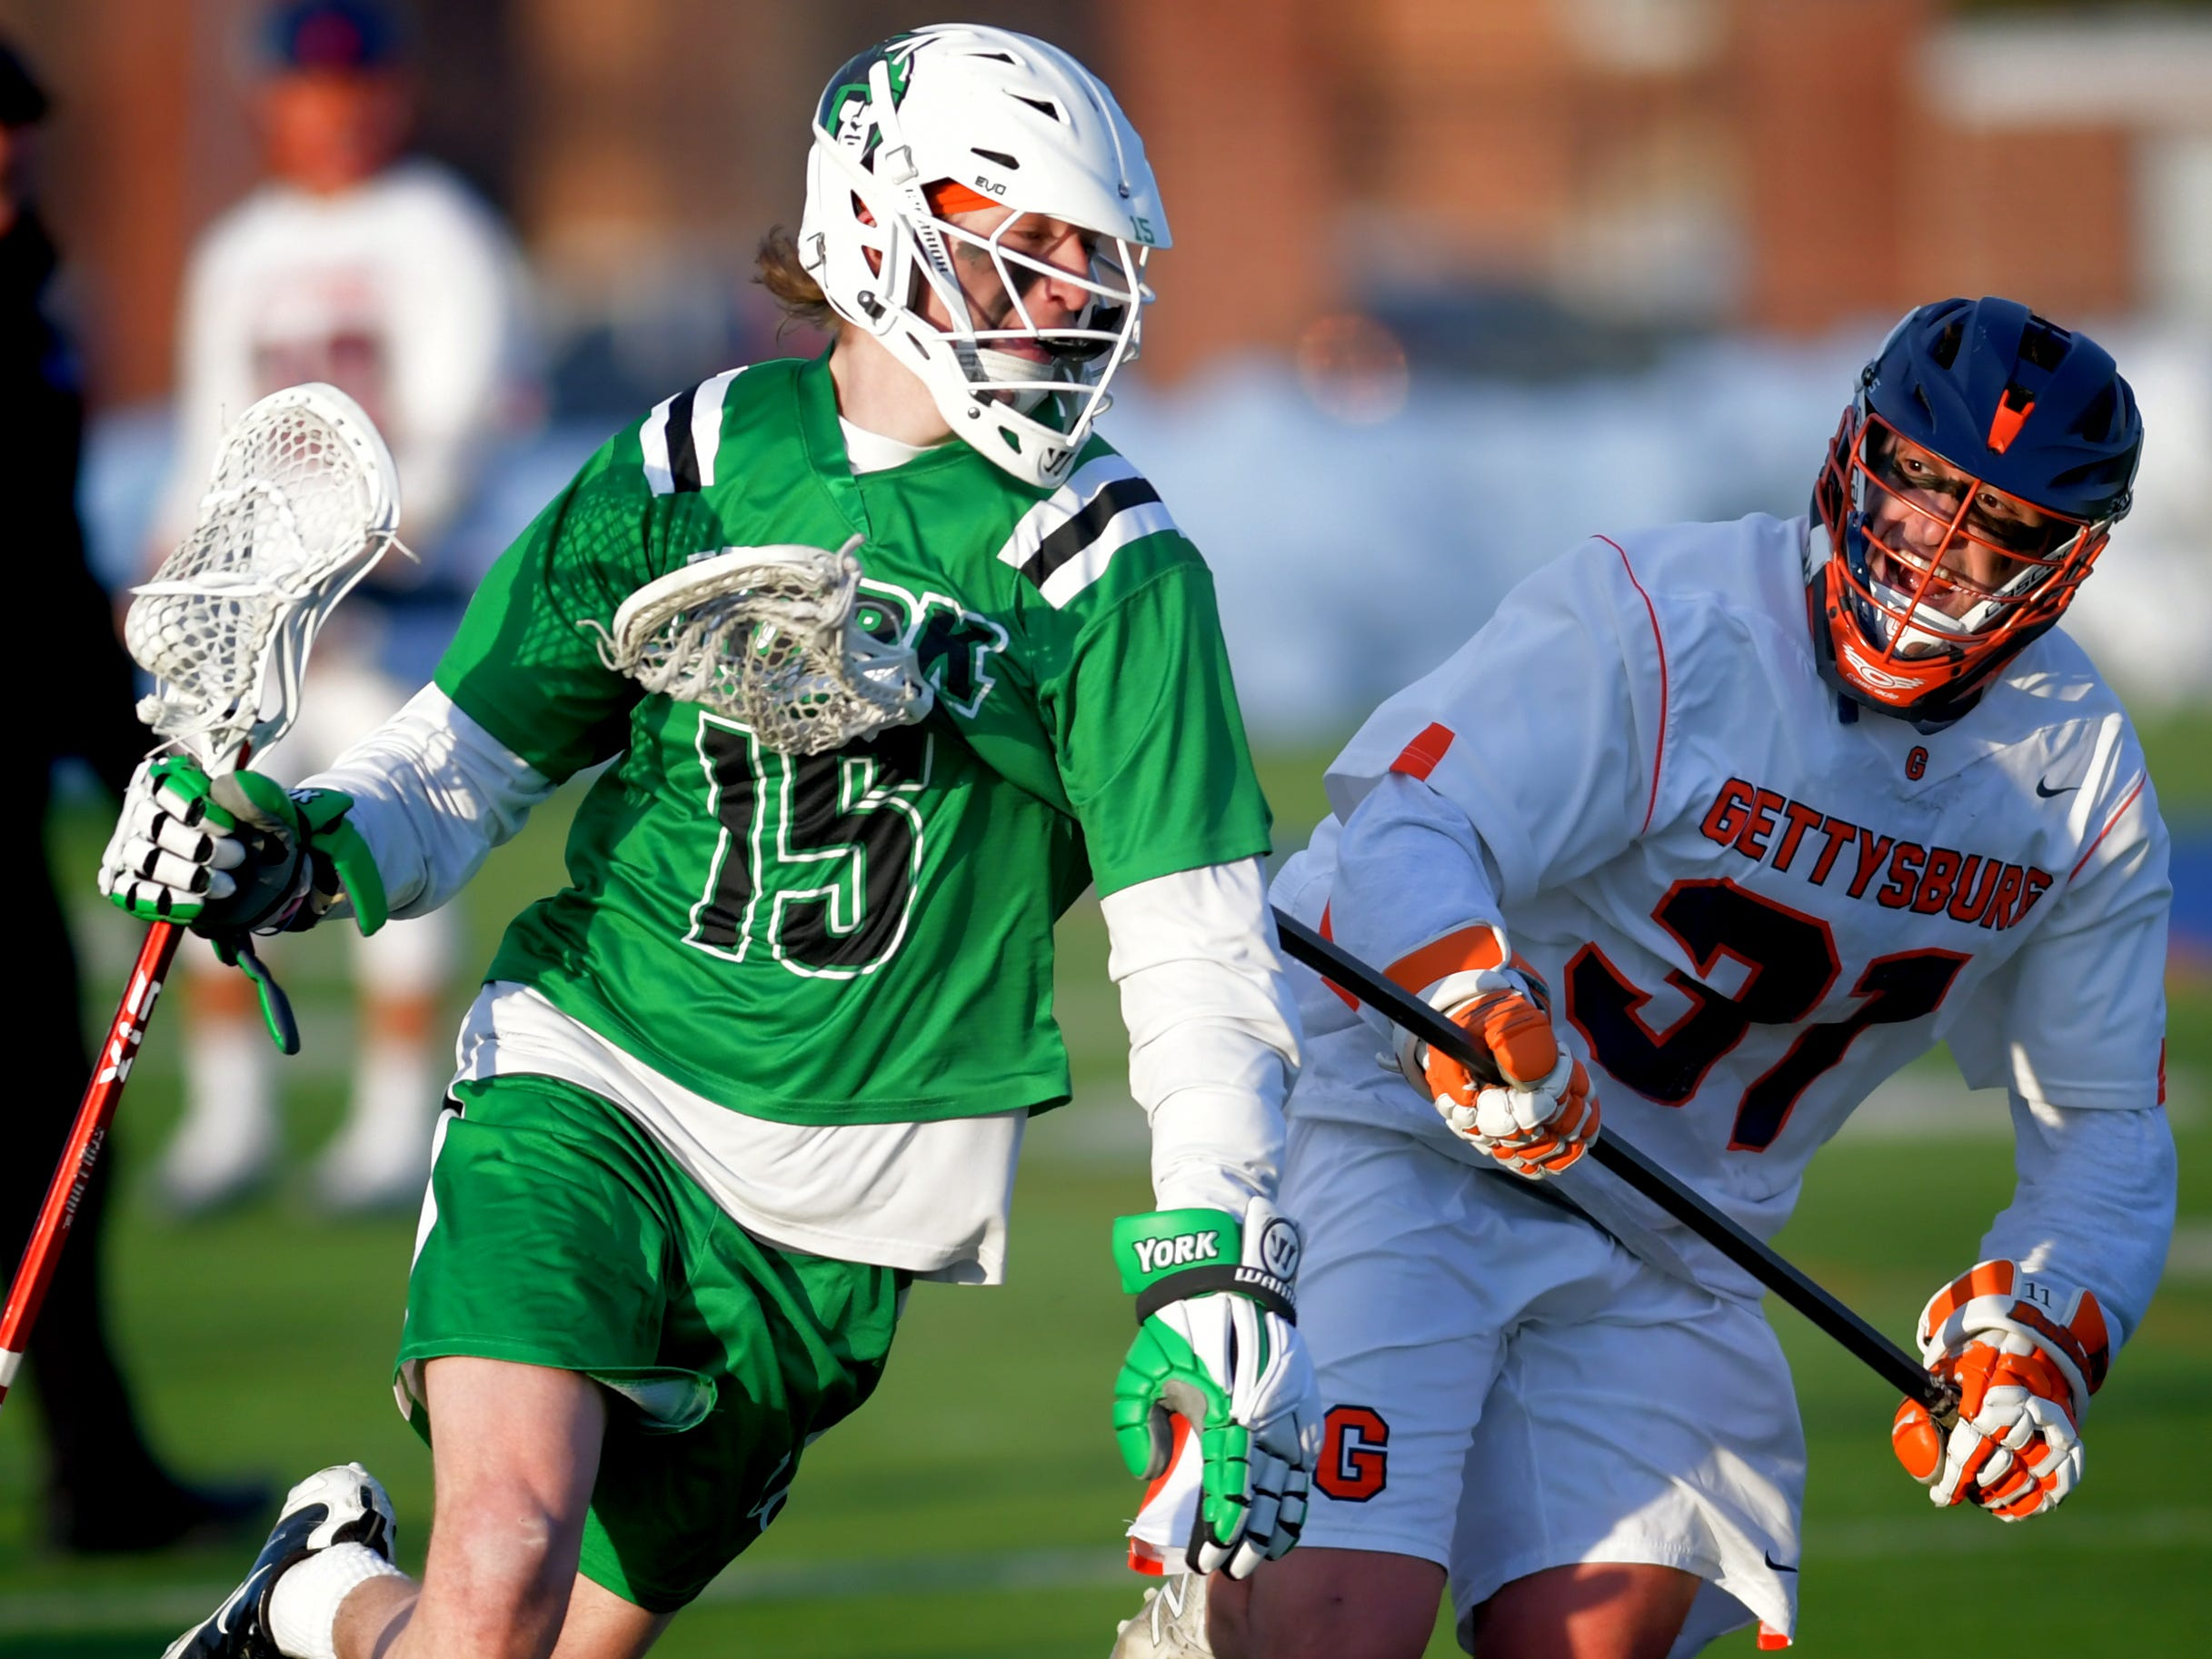 York College's Dylan Wolf moves the ball with Gettysburg College's Christian Atalese defending during lacrosse action at Gettysburg Wednesday, March 6, 2019. Both teams were ranked in the top 10 nationally in NCAA Division III men's lacrosse coming into the game. York won 14-6. Bill Kalina photo